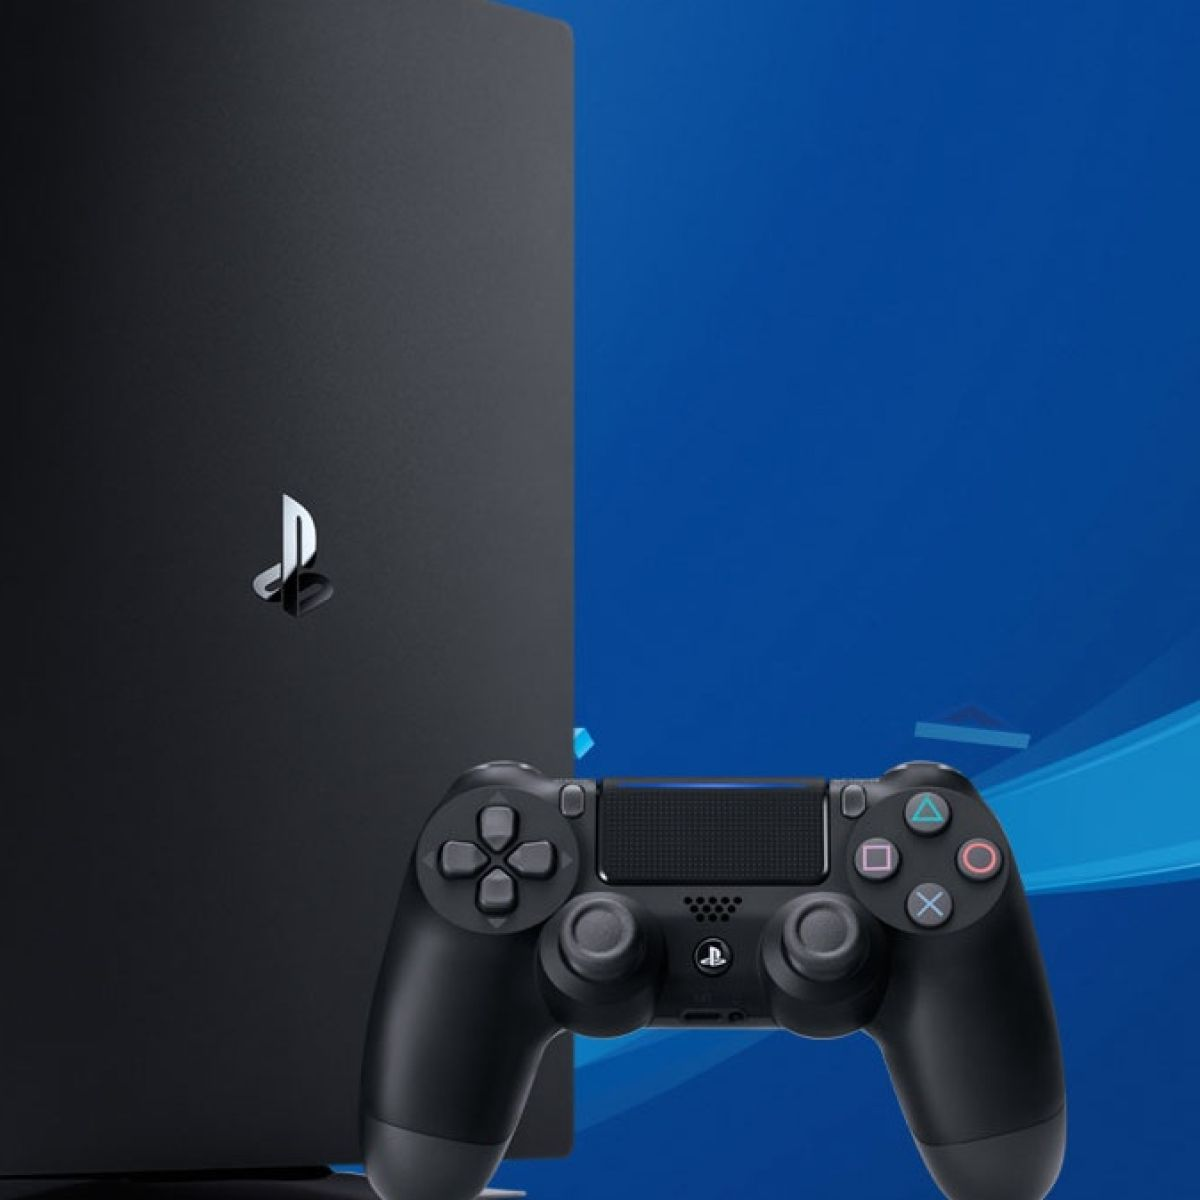 Review Souped Up Playstation 4 Pro Offers Beautiful 4k Gaming Game Ps4 Steep  Reg 3